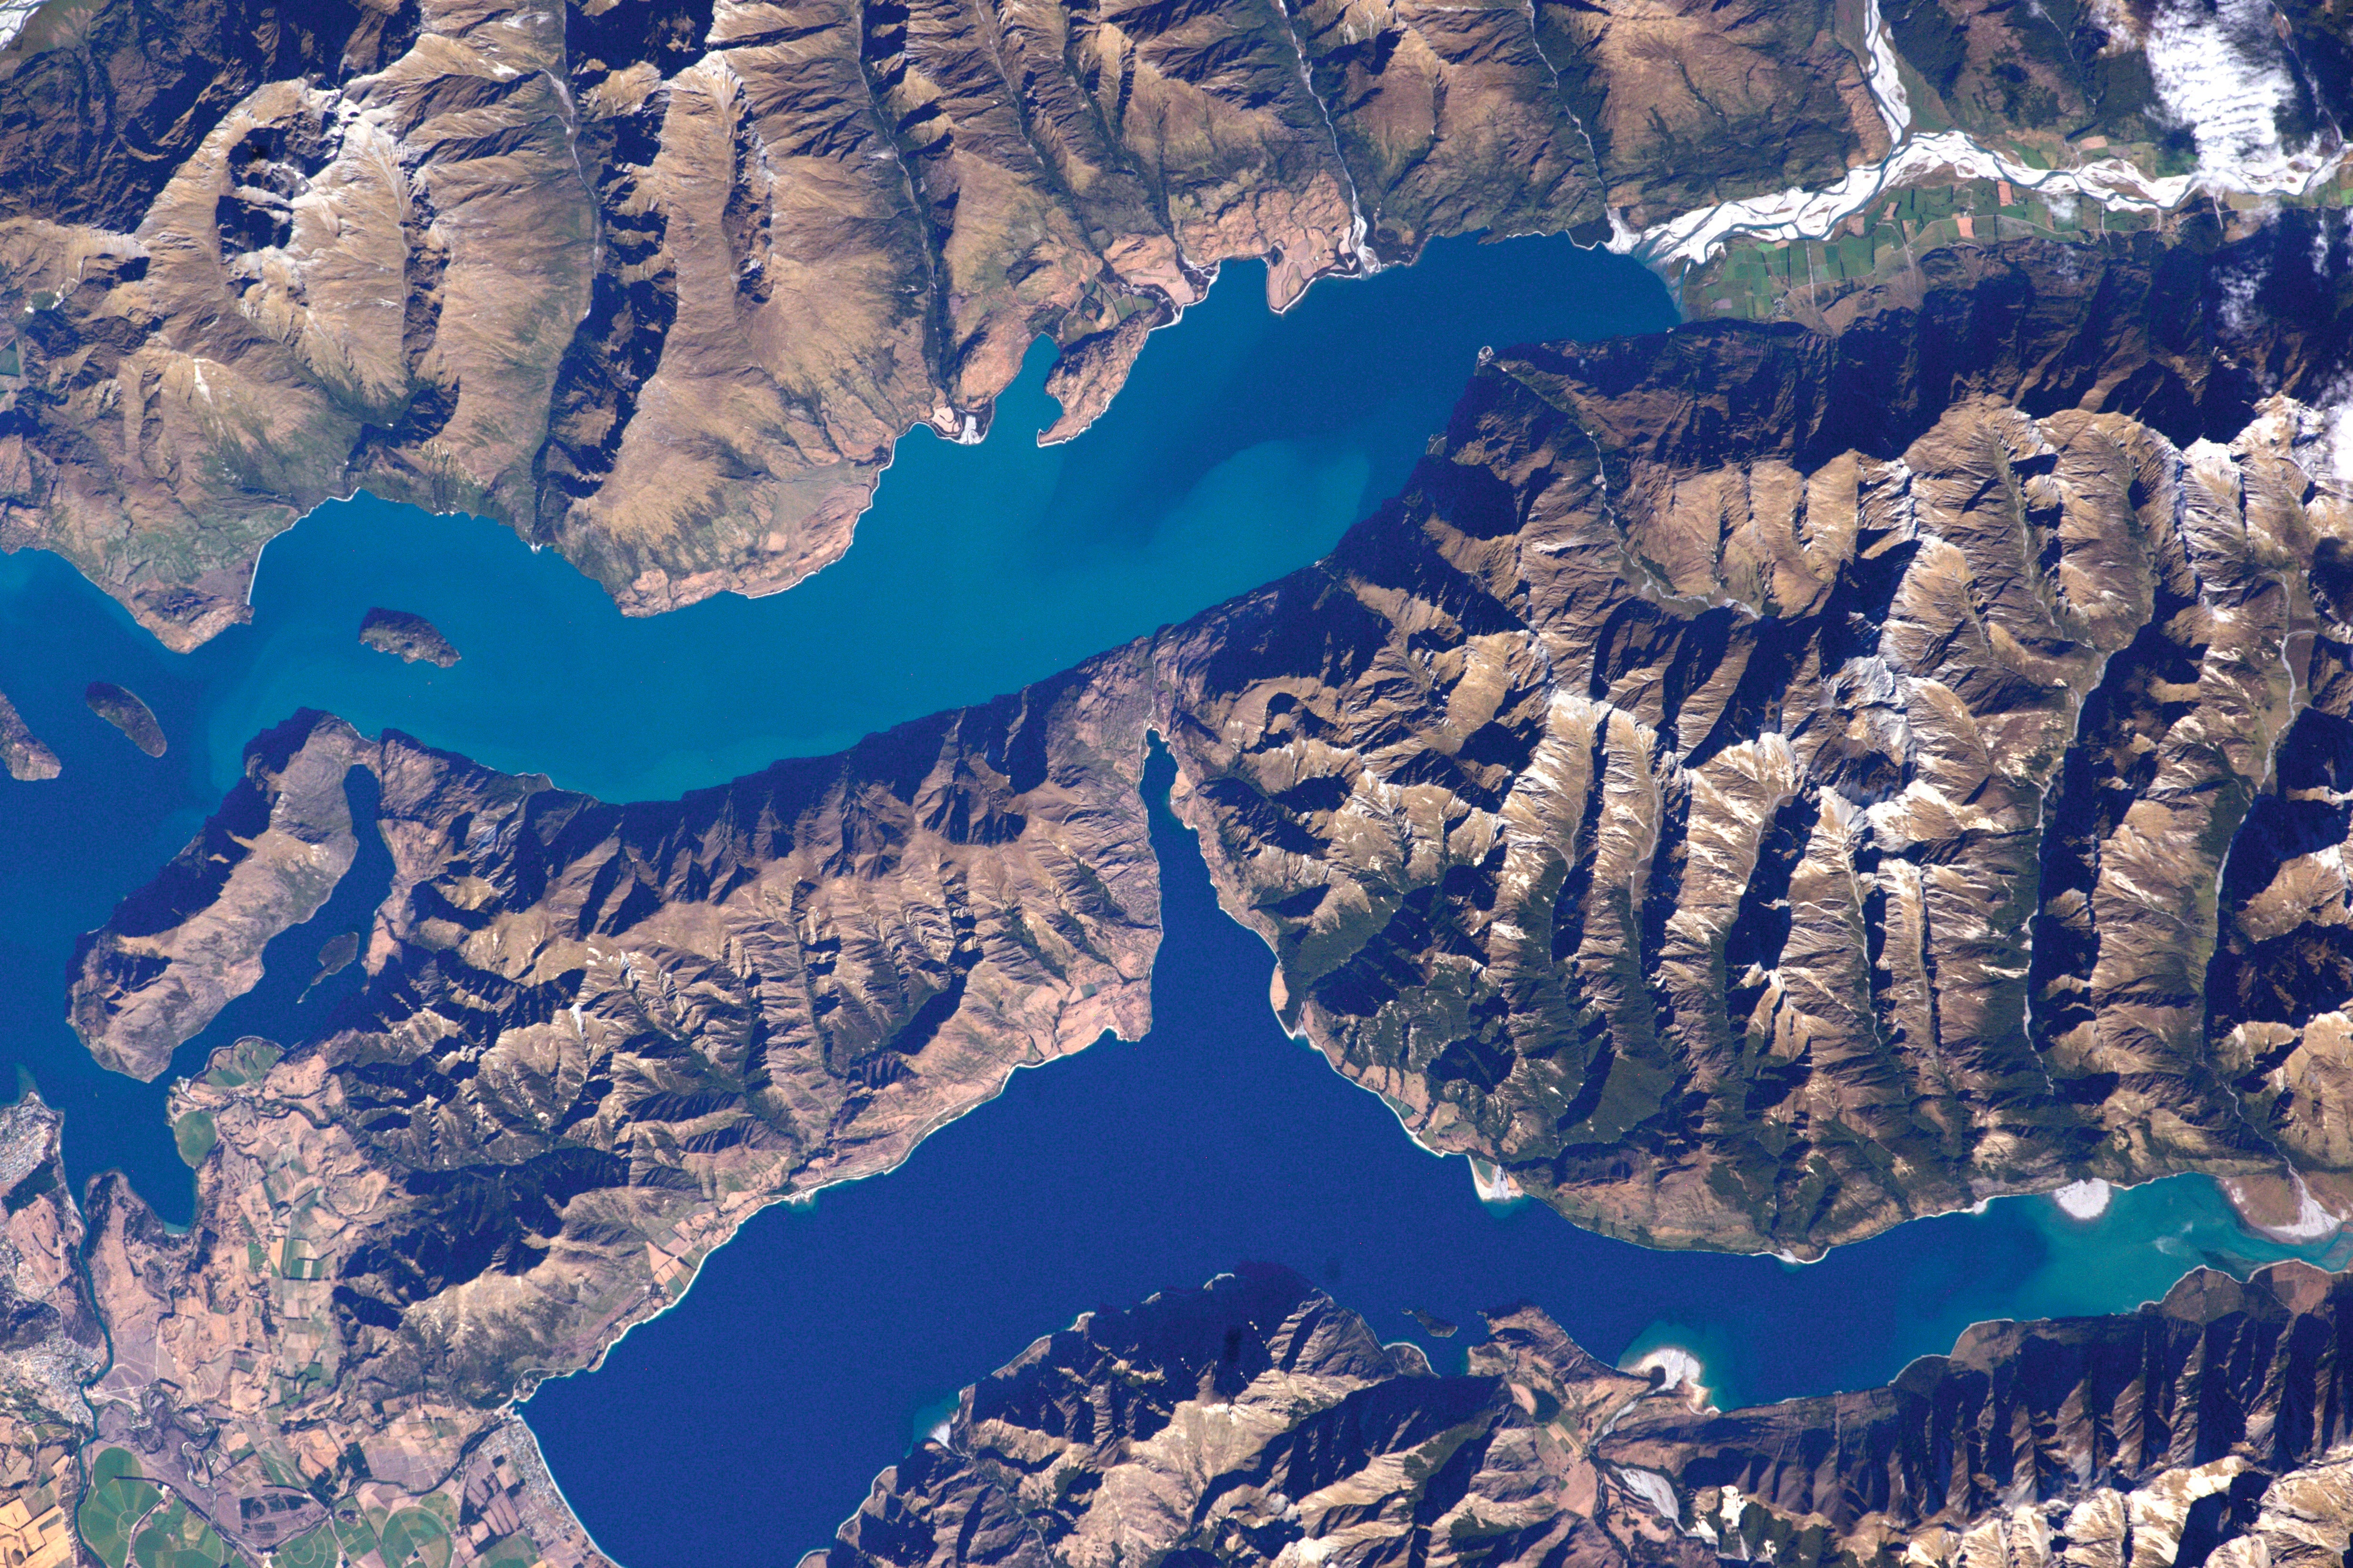 Stunning Photos of Earth from the International Space Station